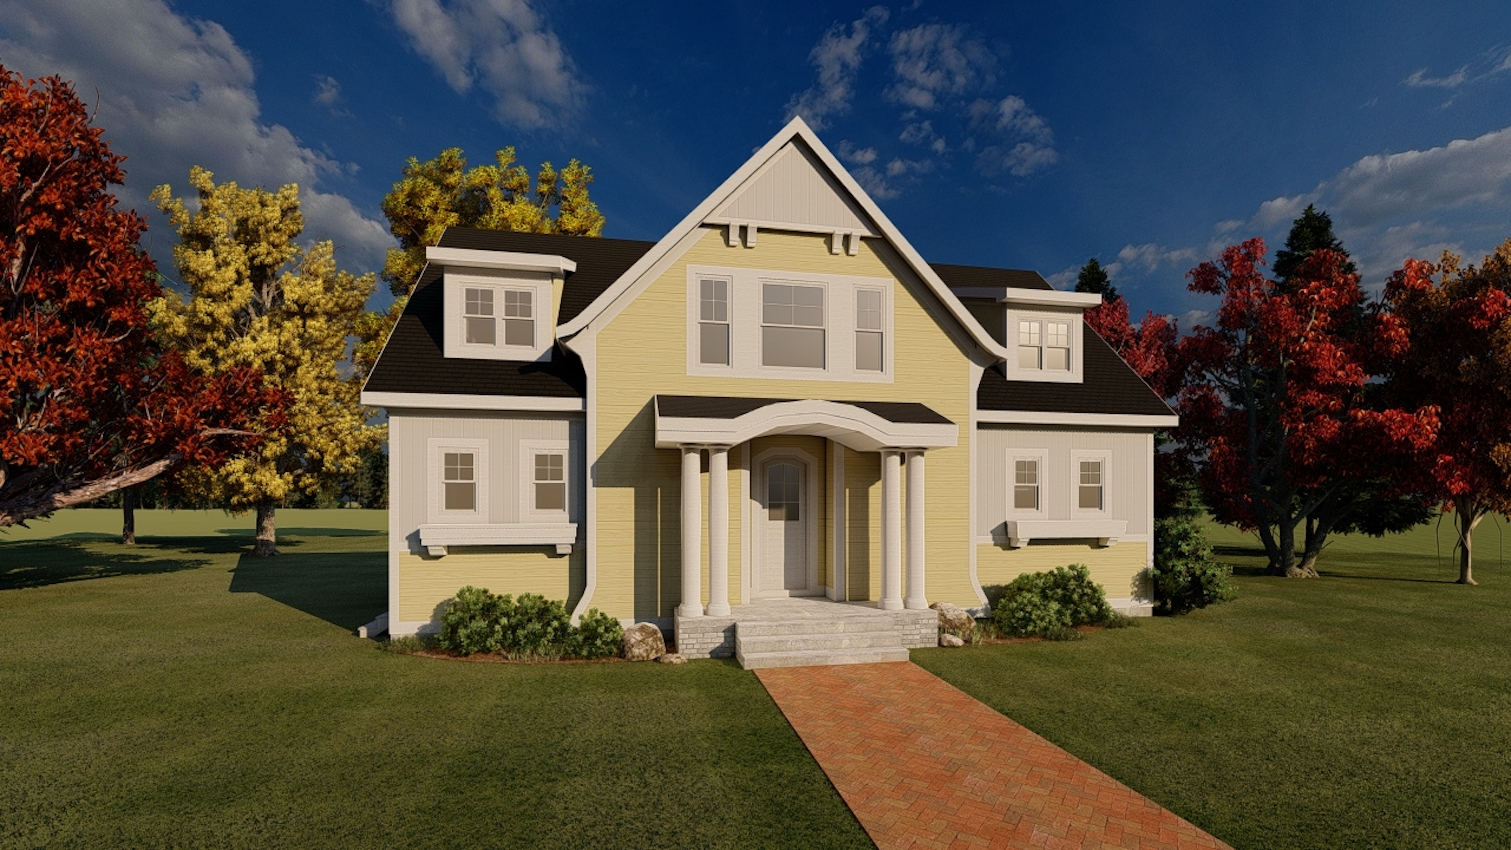 Rendering of the exterior of TK Design & Associates' Brianna design, which features a small footprint but plenty of space